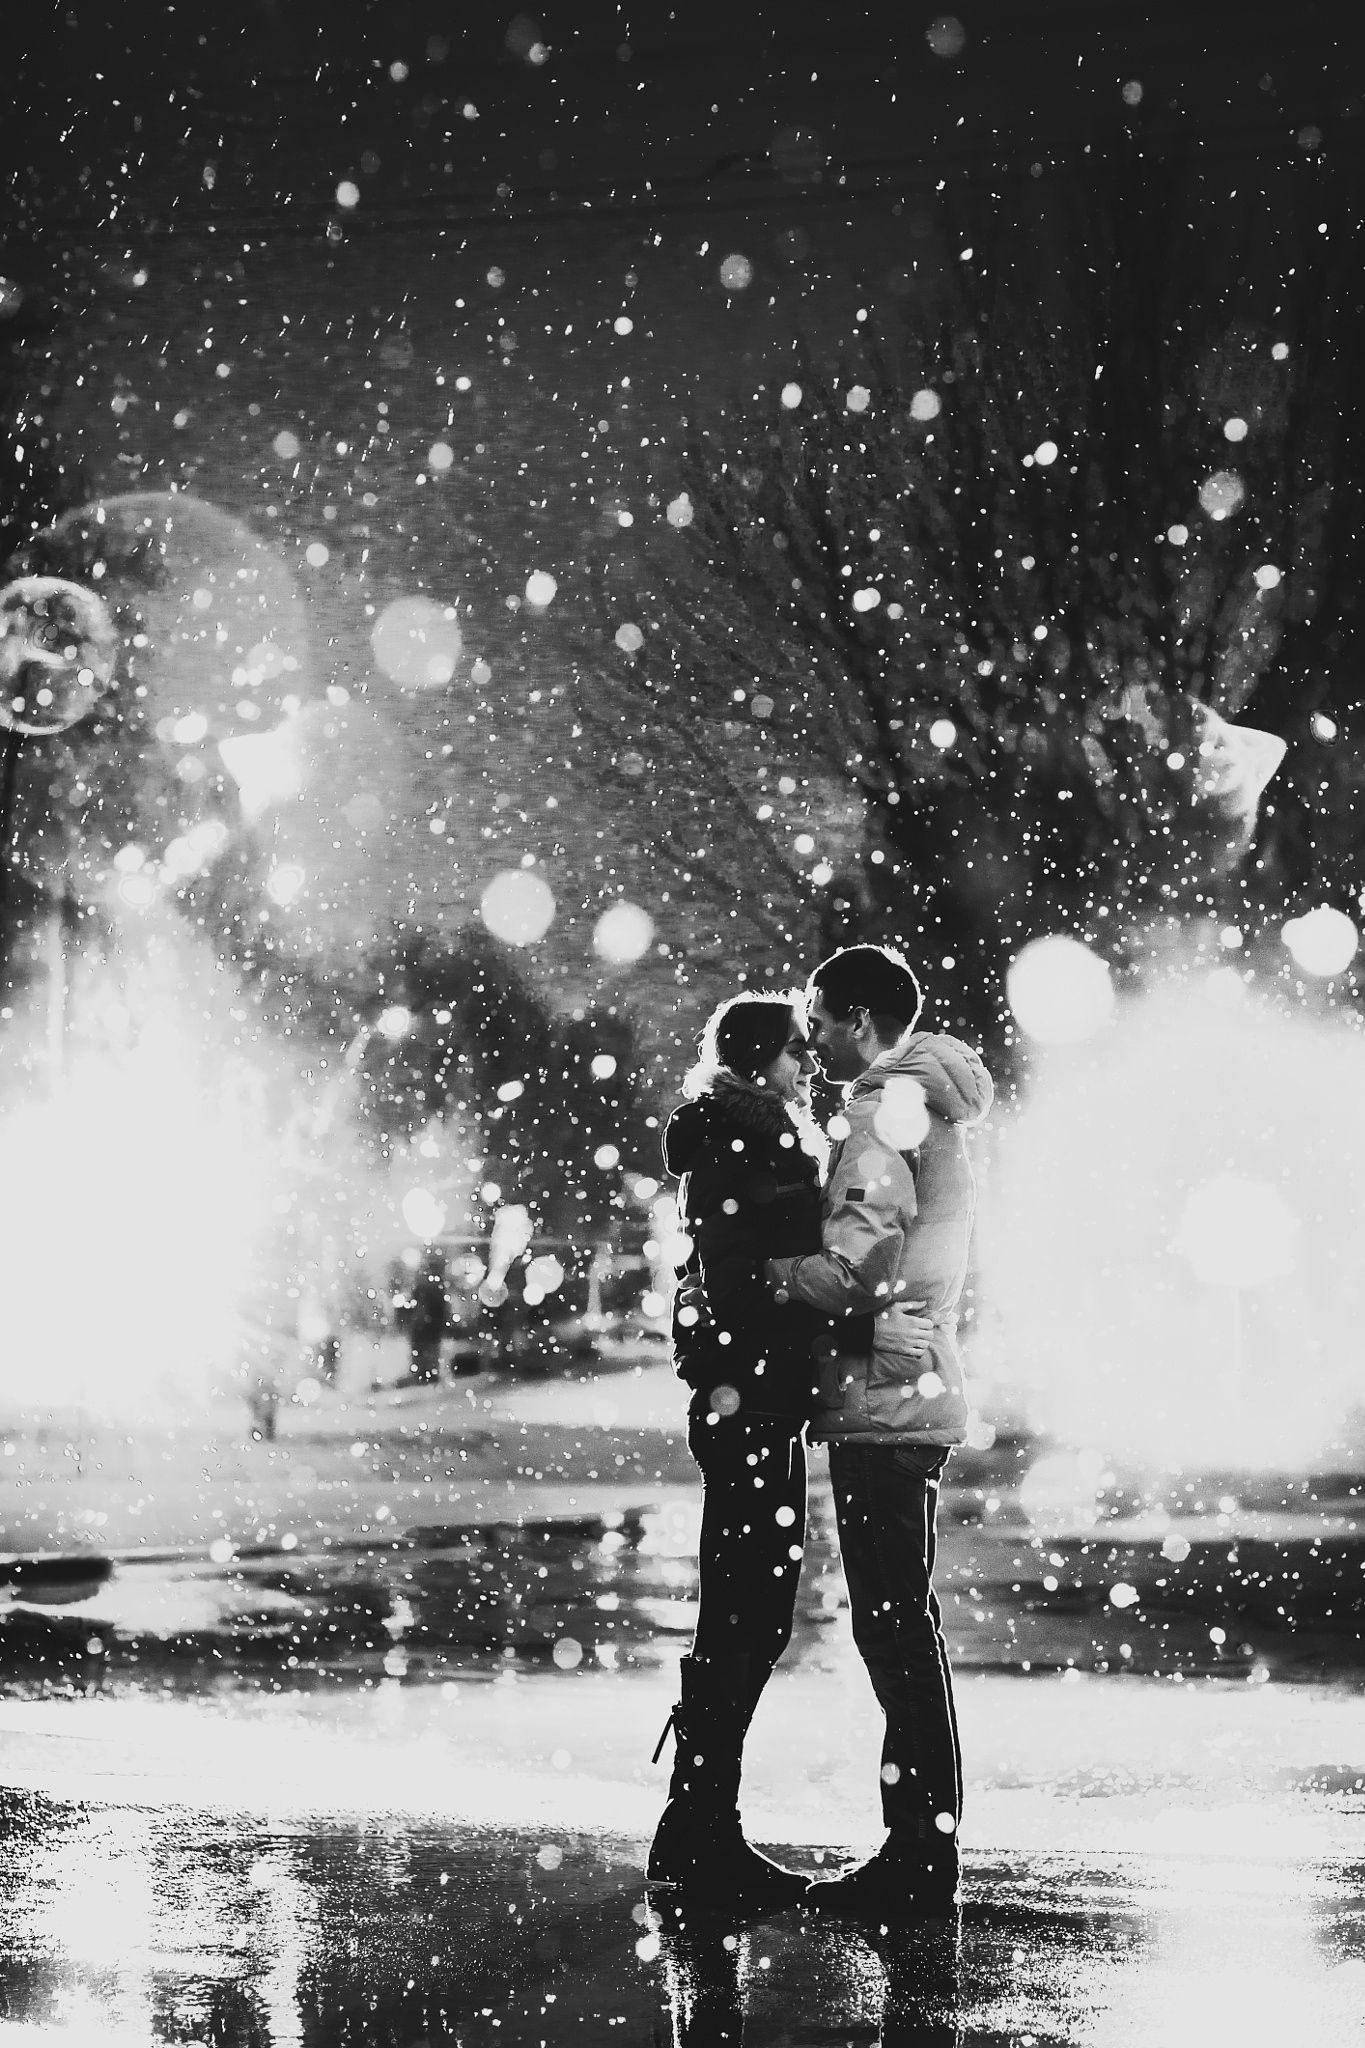 kiss, rain, snow, cold, street, date, two, attractive